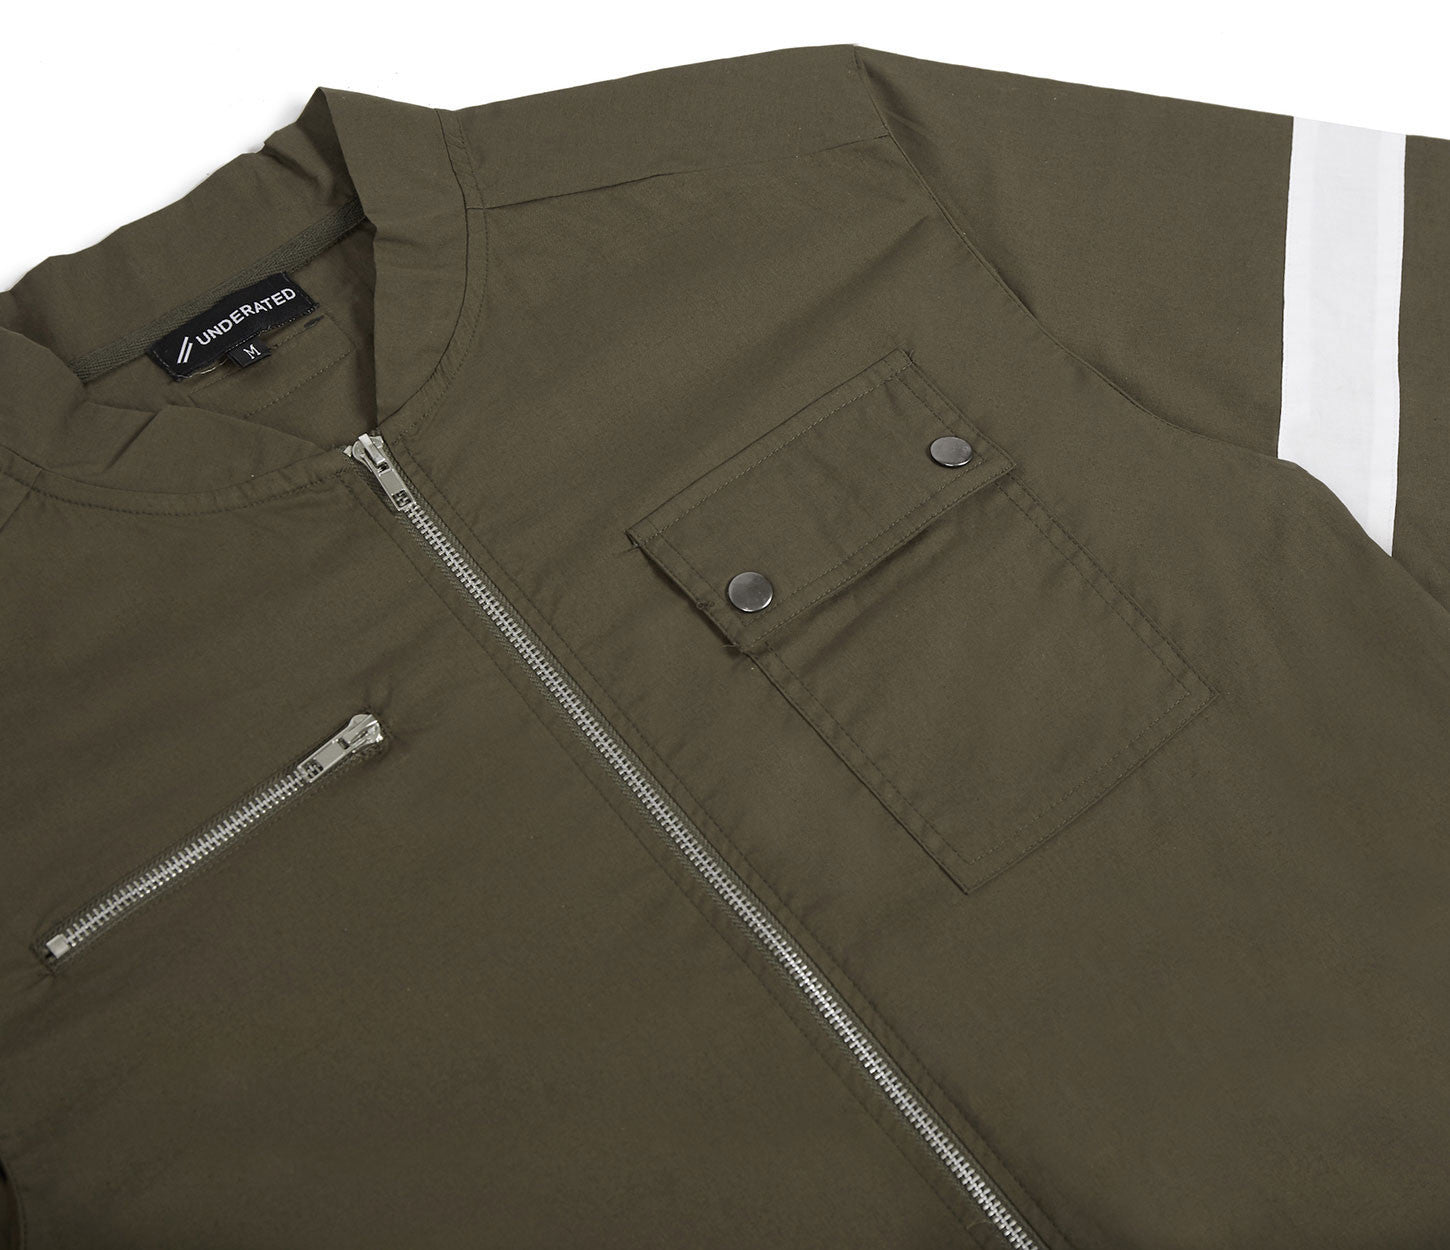 JS368 Boiler Suit - Khaki - underated london - underatedco - 6